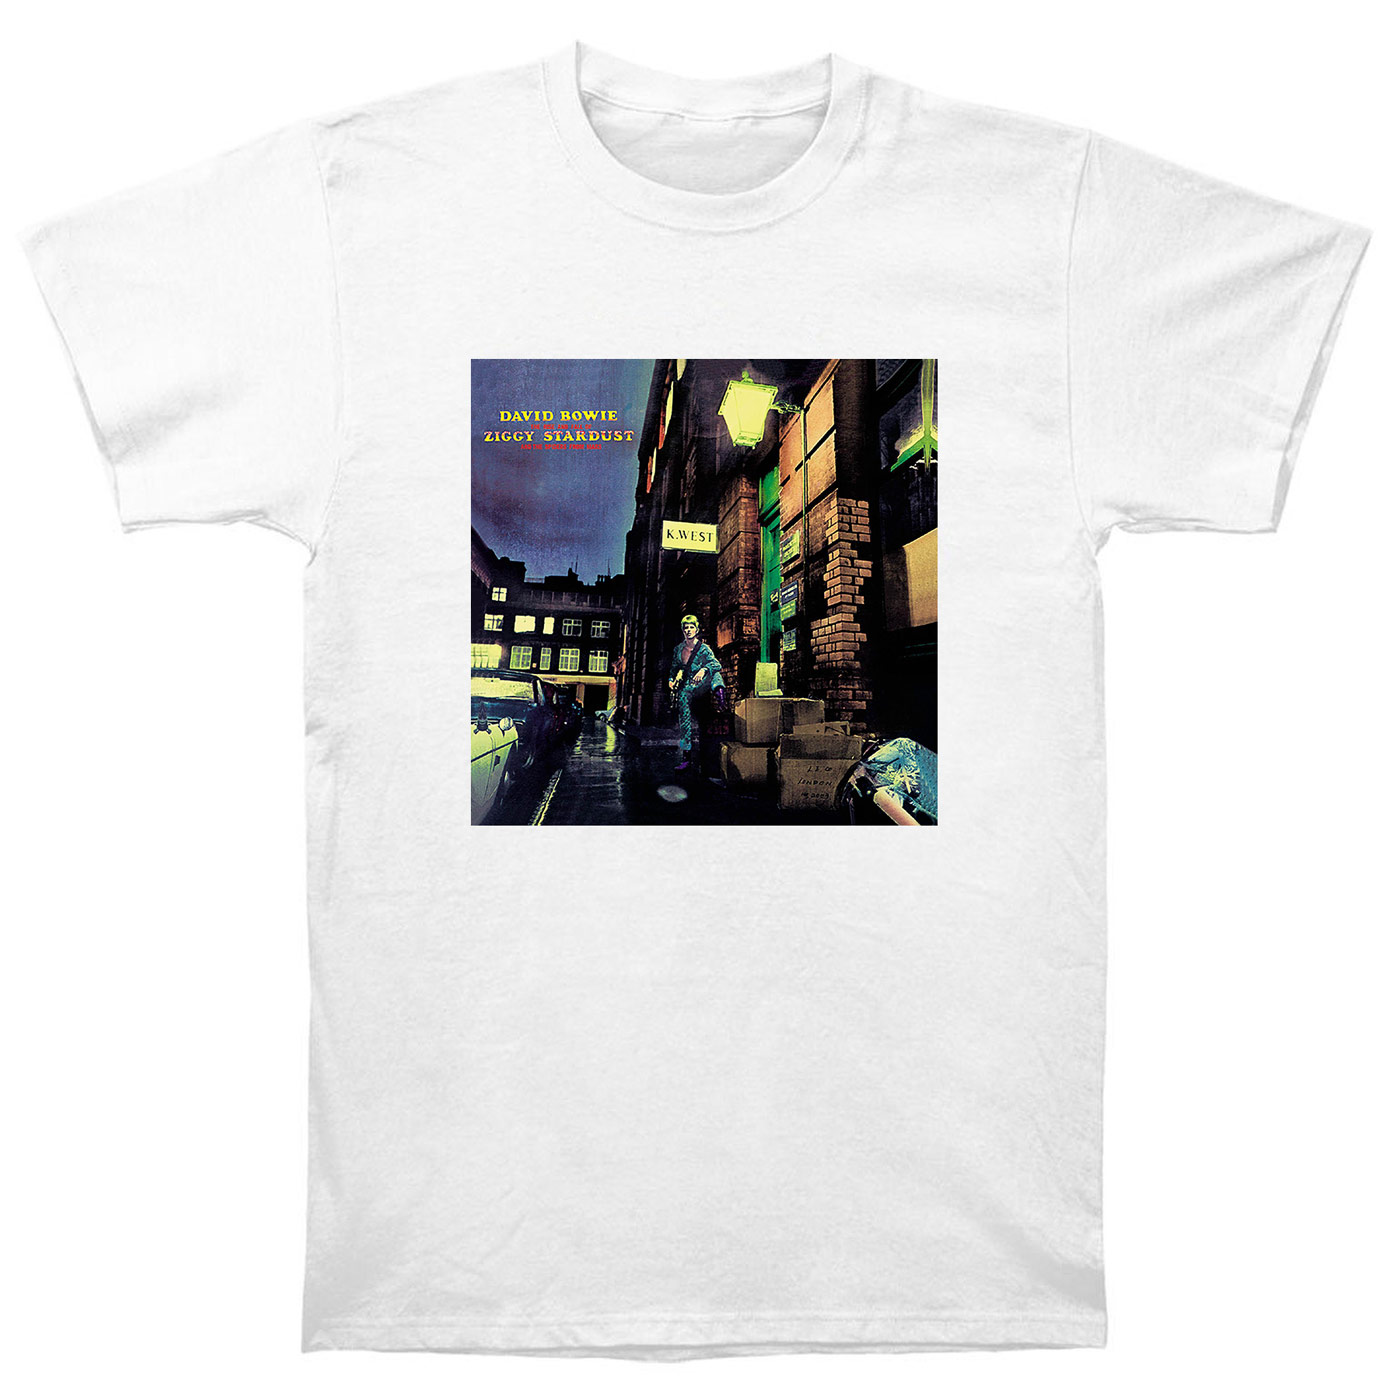 David Bowie The Rise And Fall Of Ziggy Stardust And The <font><b>Spiders</b></font> From Mars T Shirt <font><b>CD</b></font> Vinyl Poster T-Shirts New